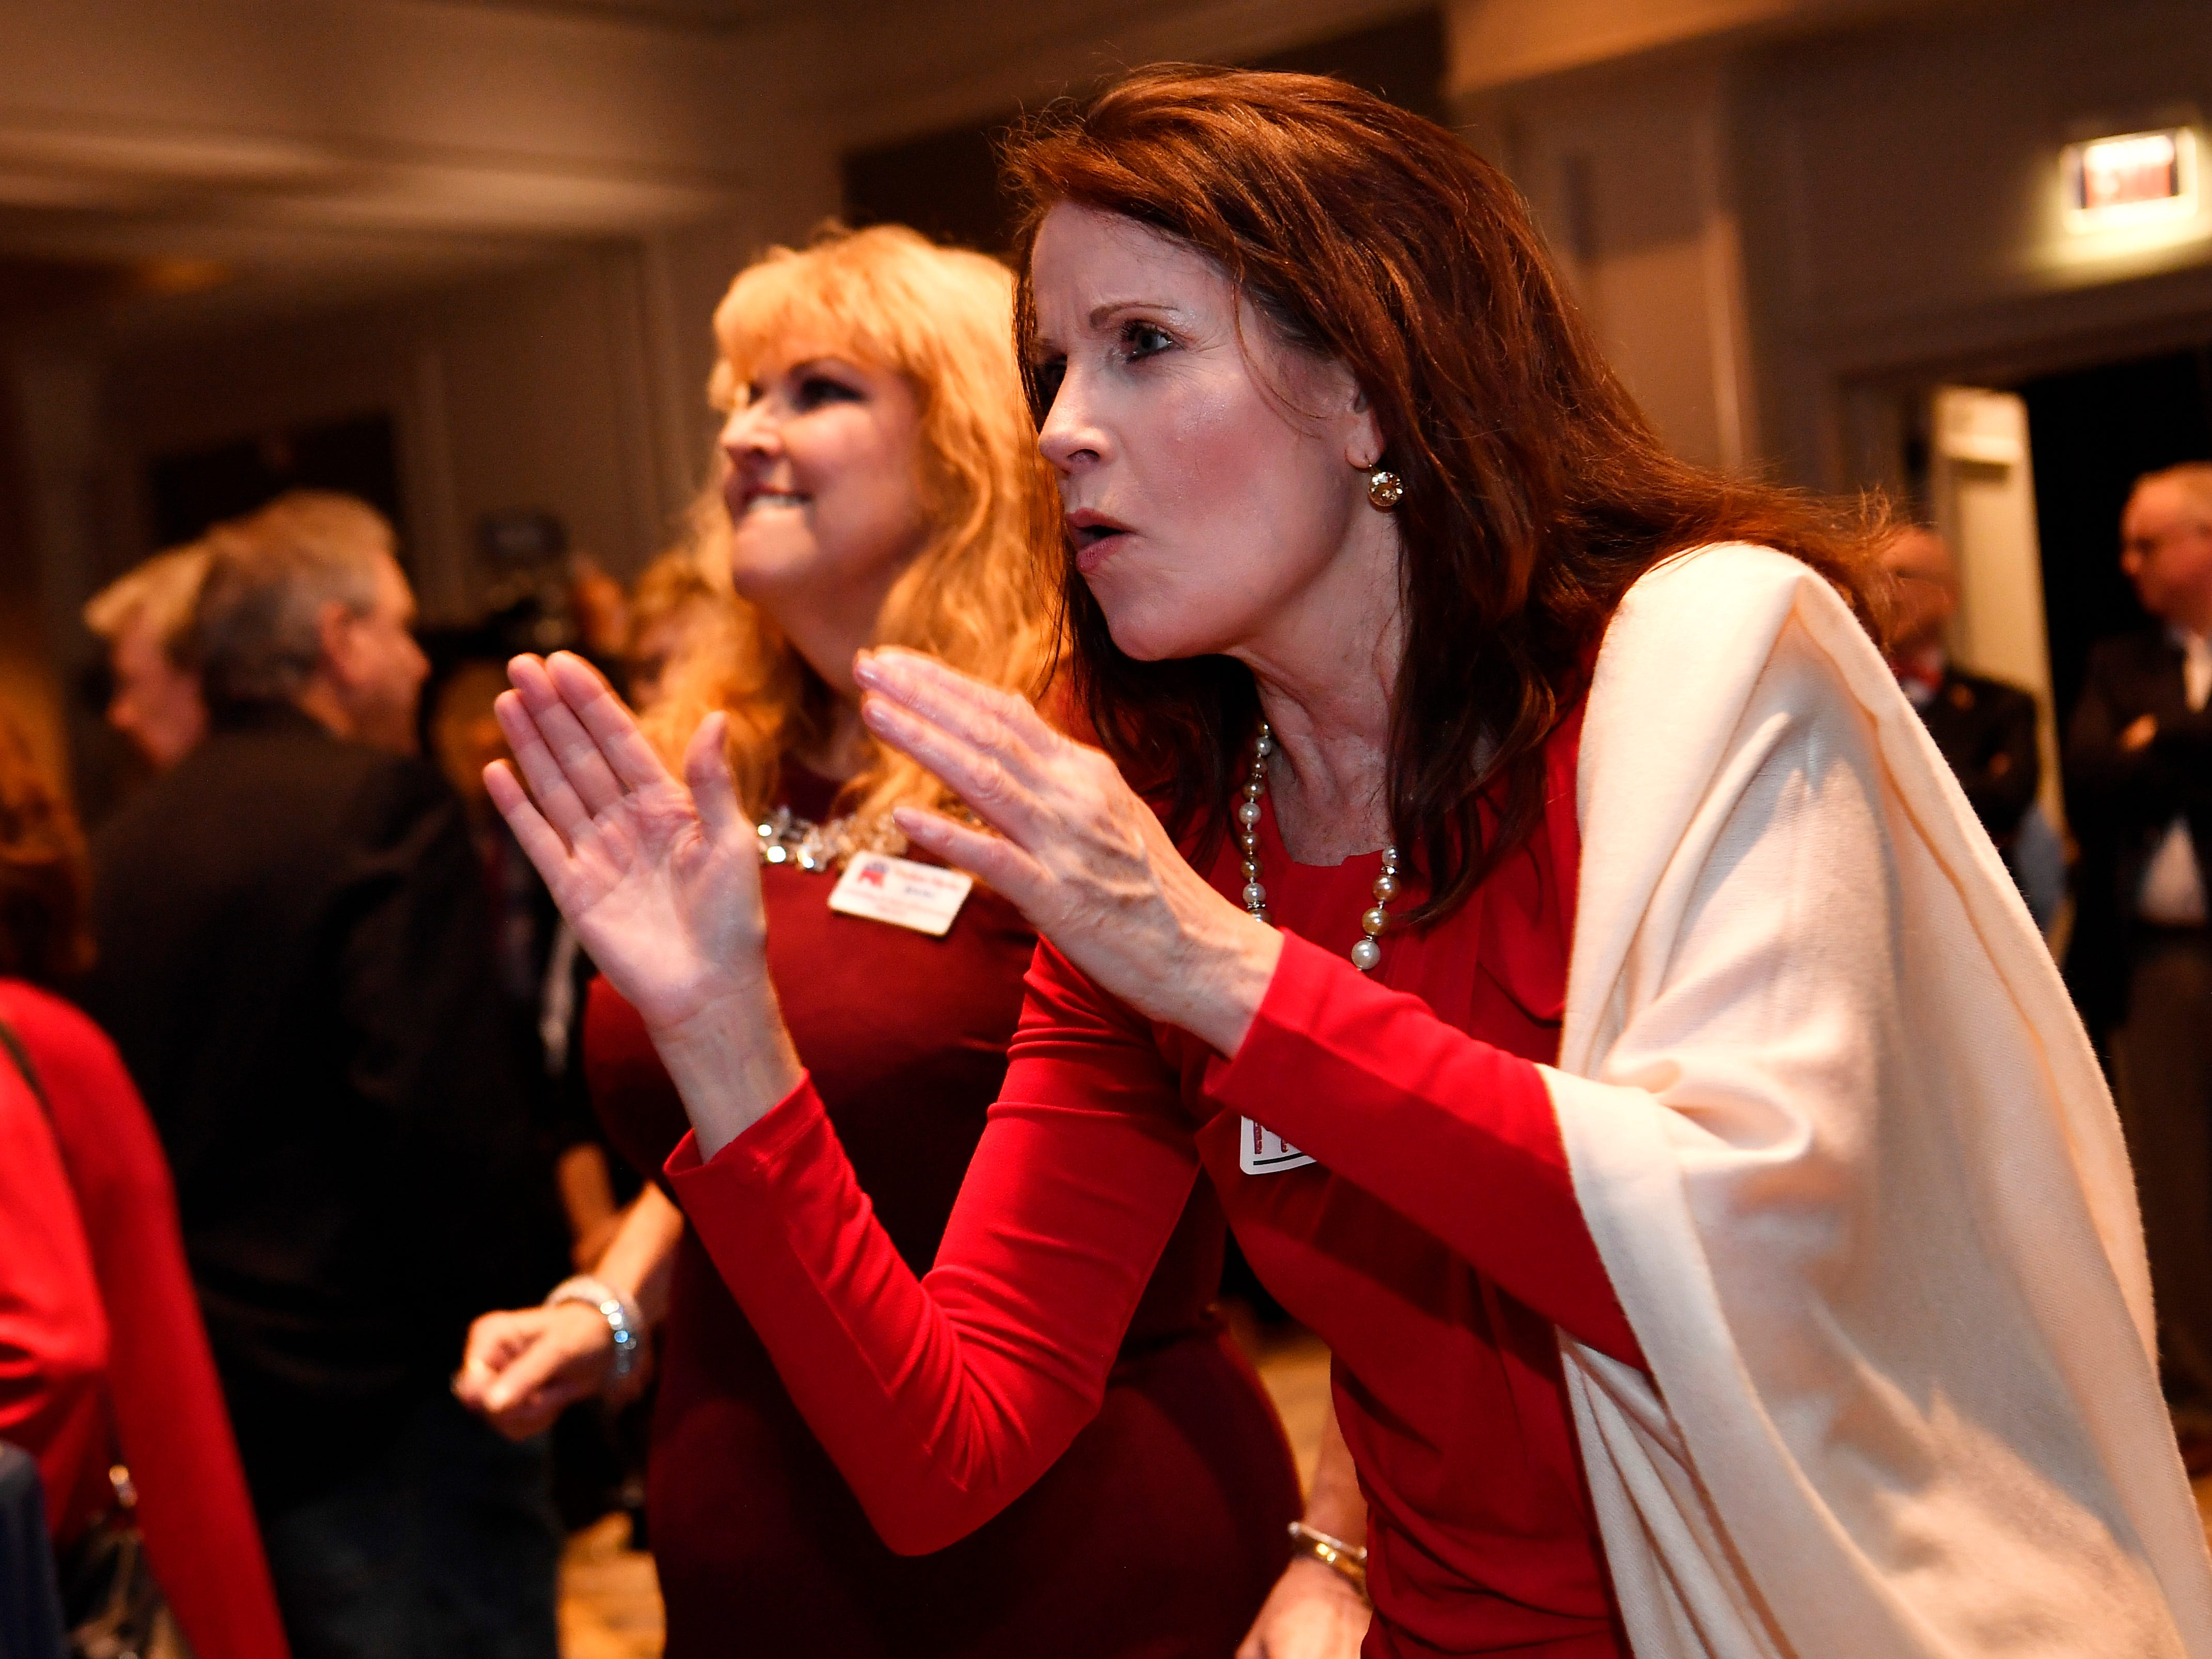 Darlene Hipsher and Melissa Miles celebrate during the election night watch party for Republican U.S. Senate candidate Marsha Blackburn  Tuesday, Nov. 6, 2018, in Franklin, Tenn.